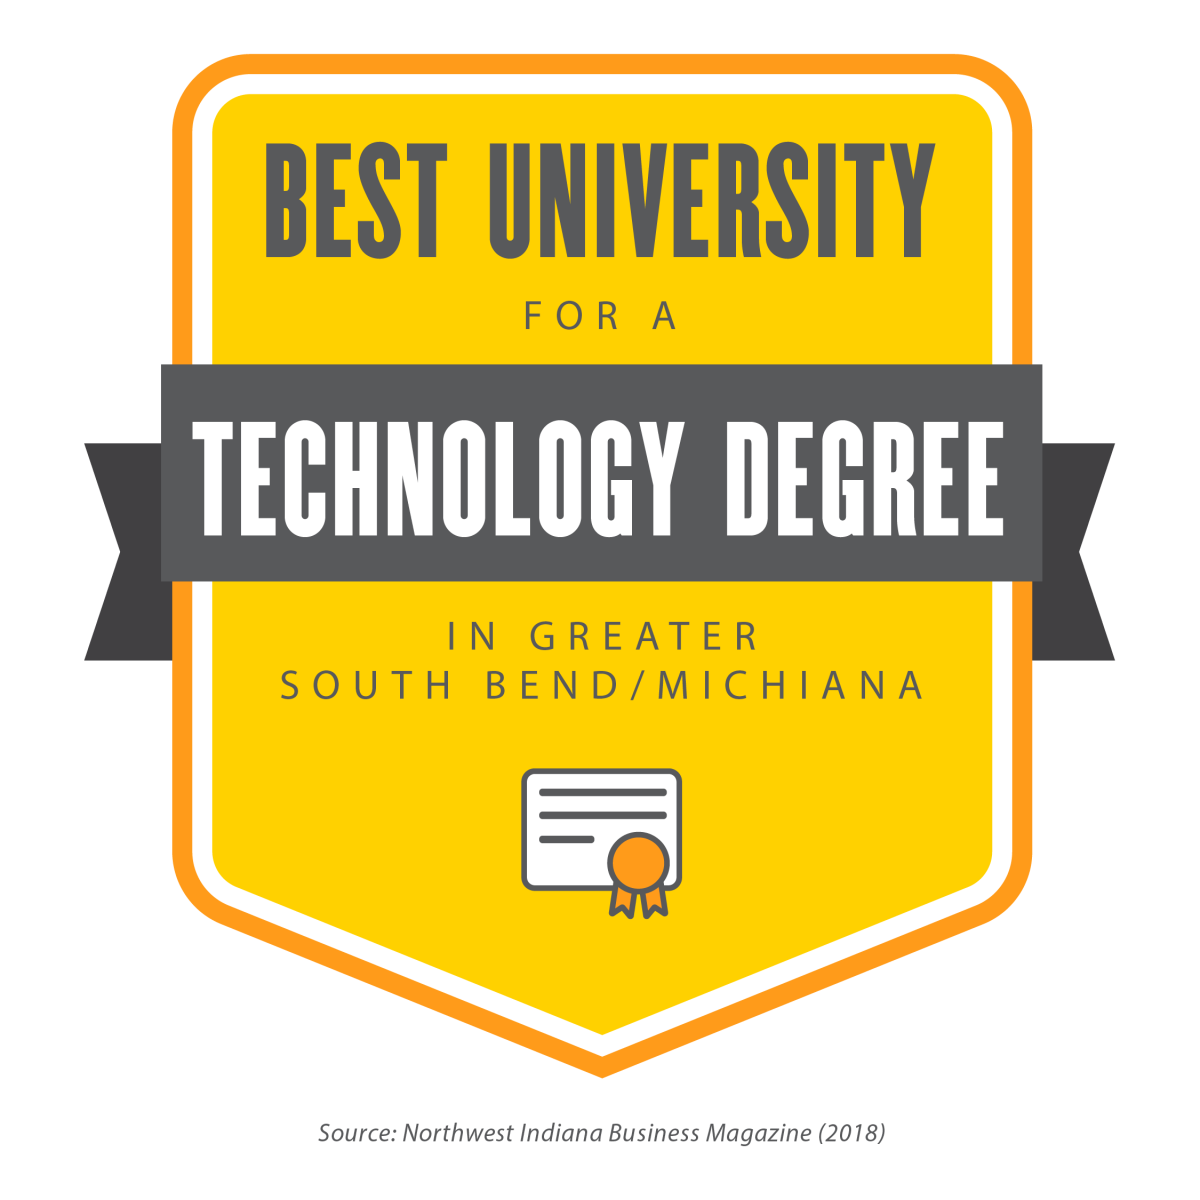 Best University for a Technology Degree